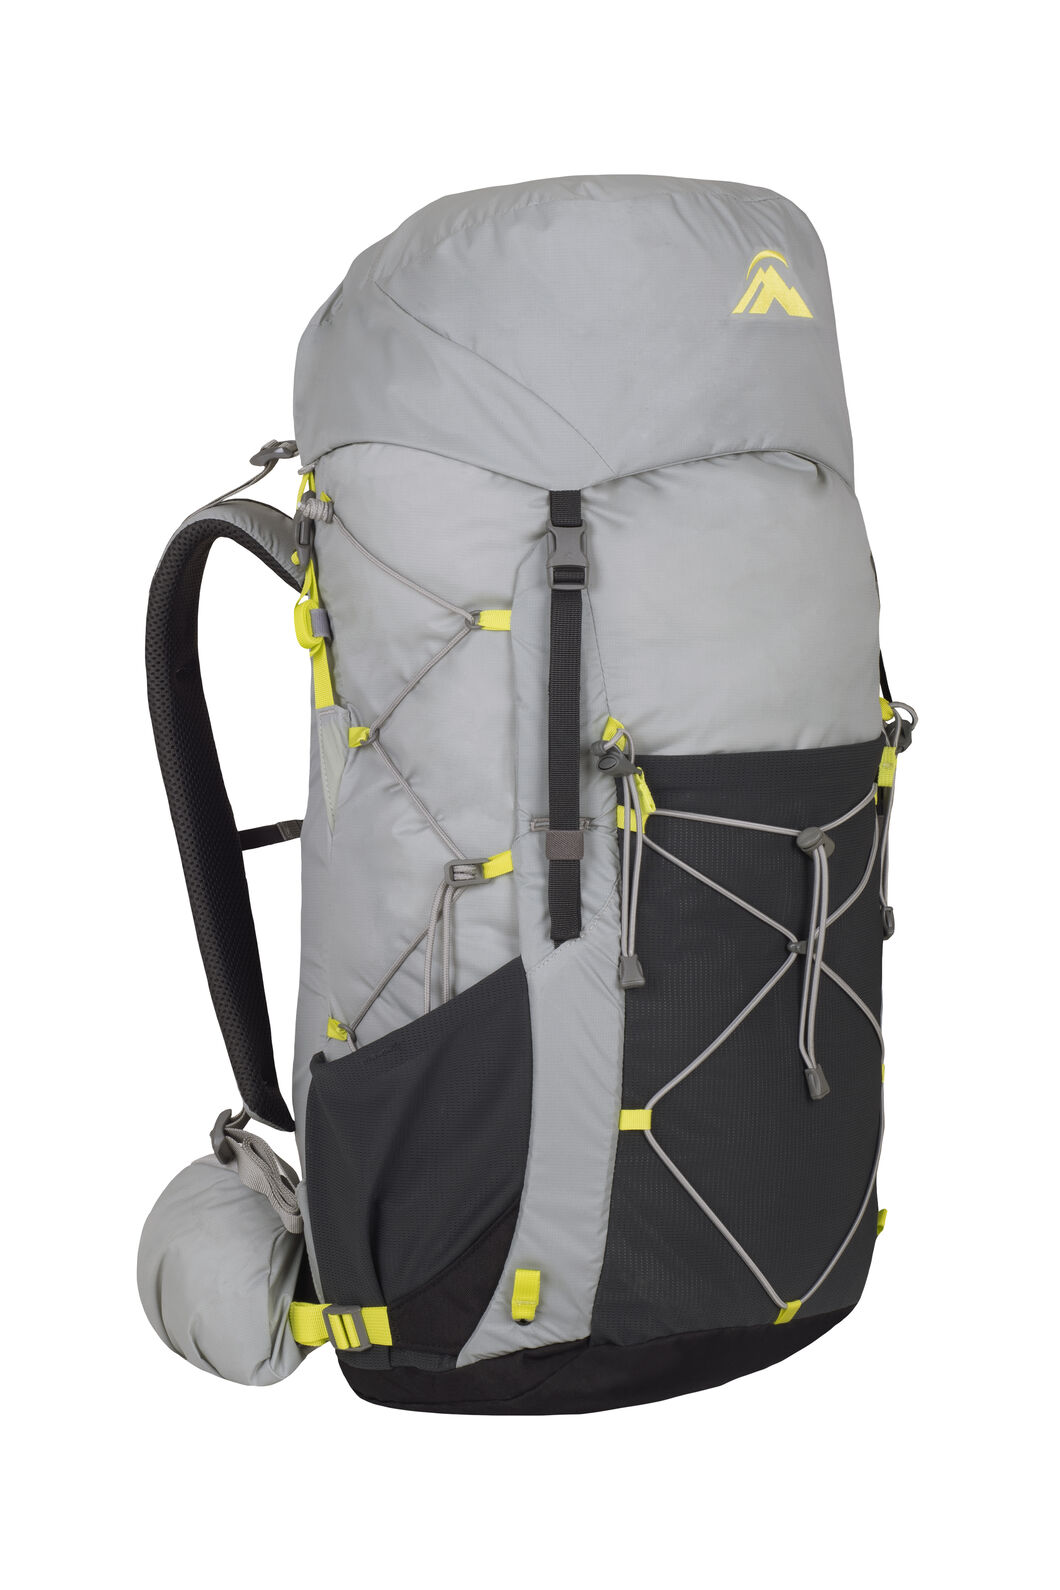 Macpac Fiord 1.1 40L Hiking Pack, Highway, hi-res